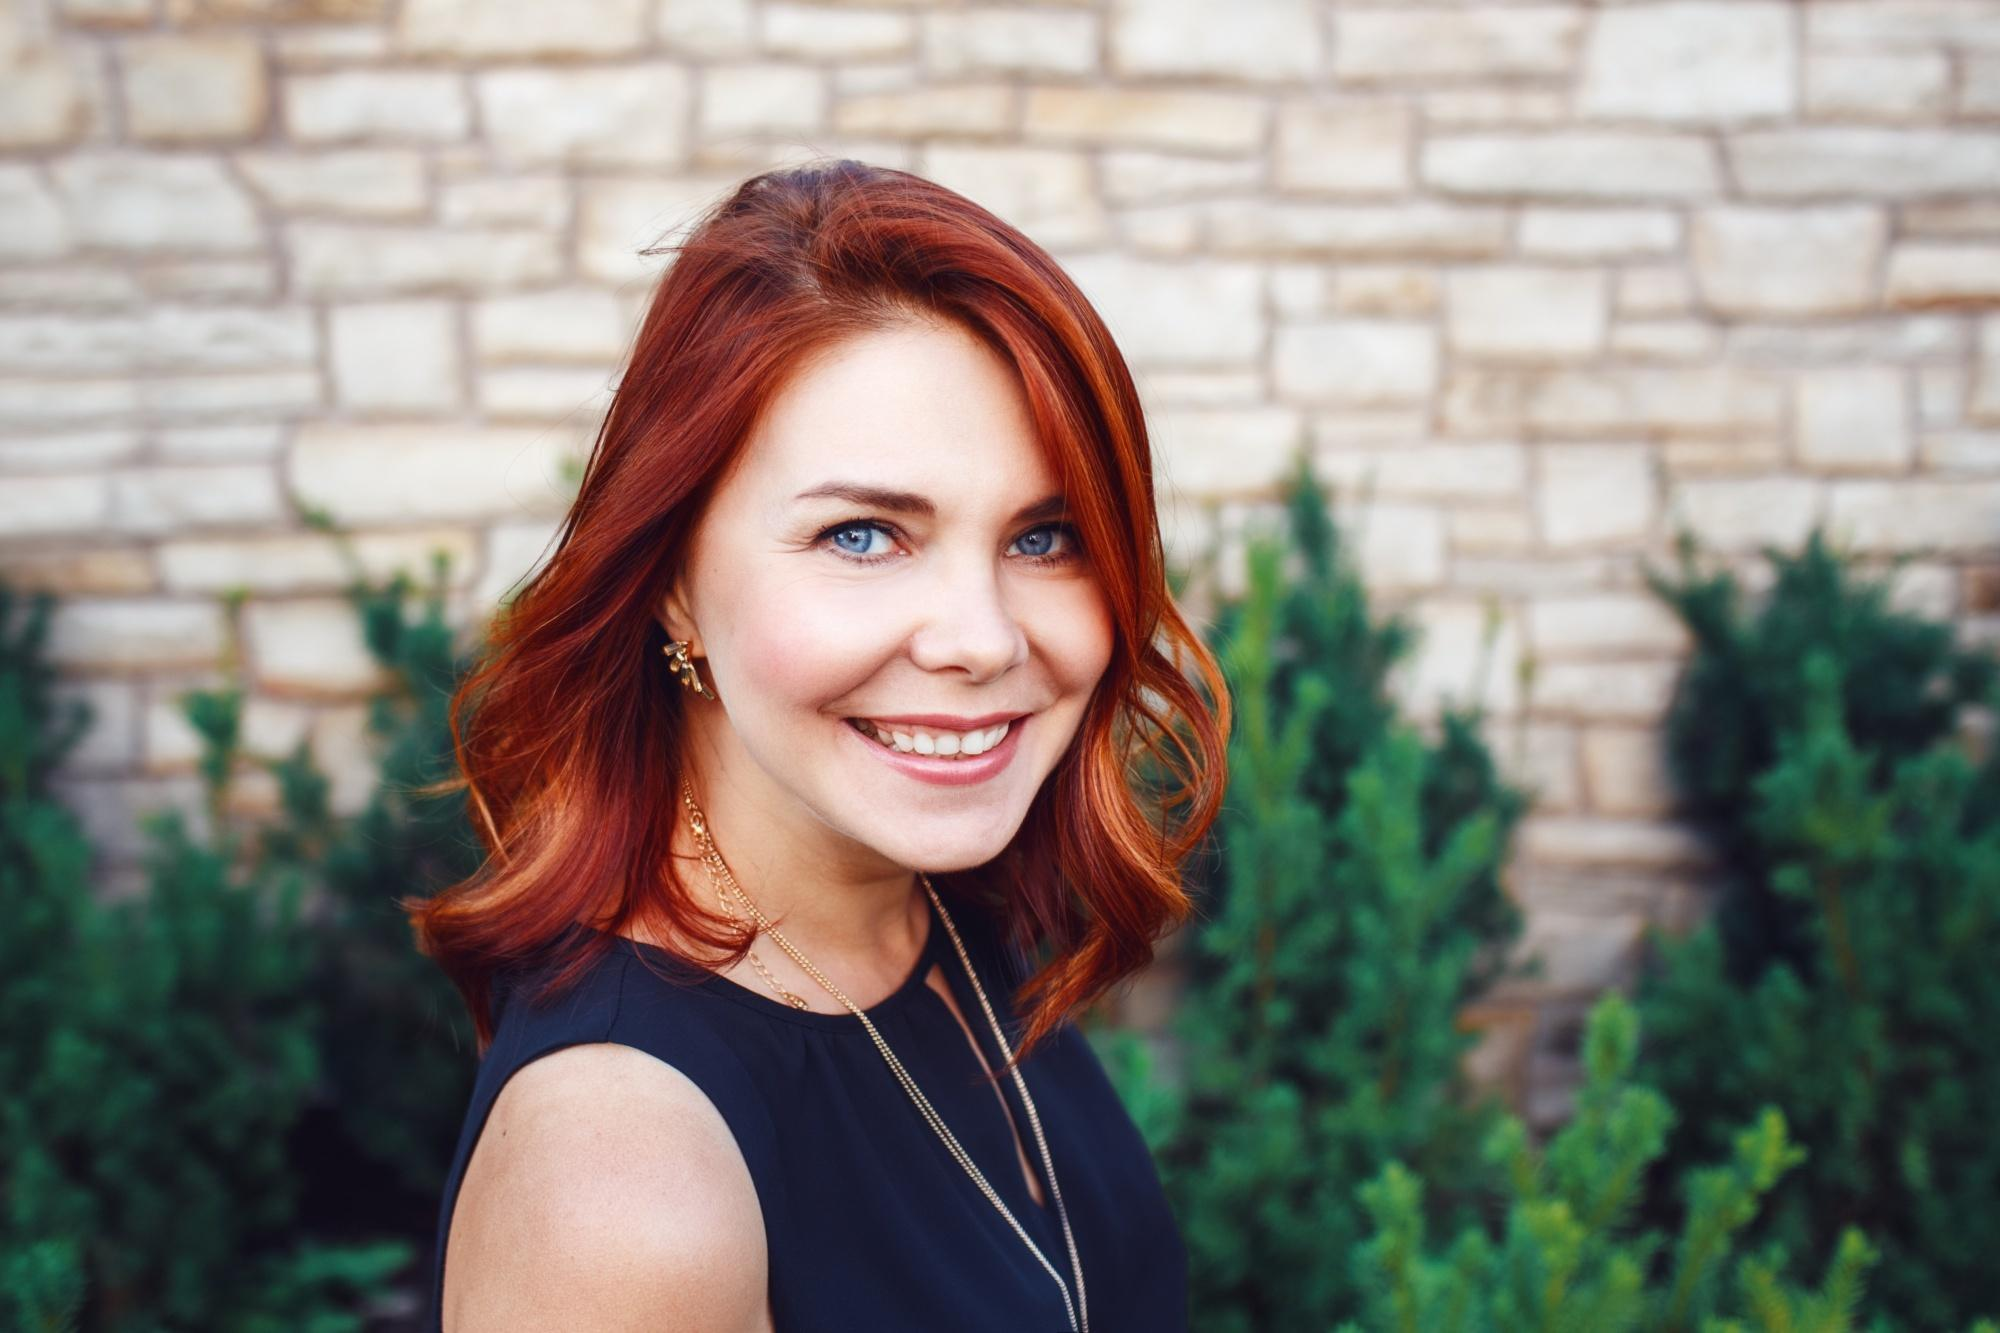 Copper hair color: woman with red toned copper hair smiling at the camera